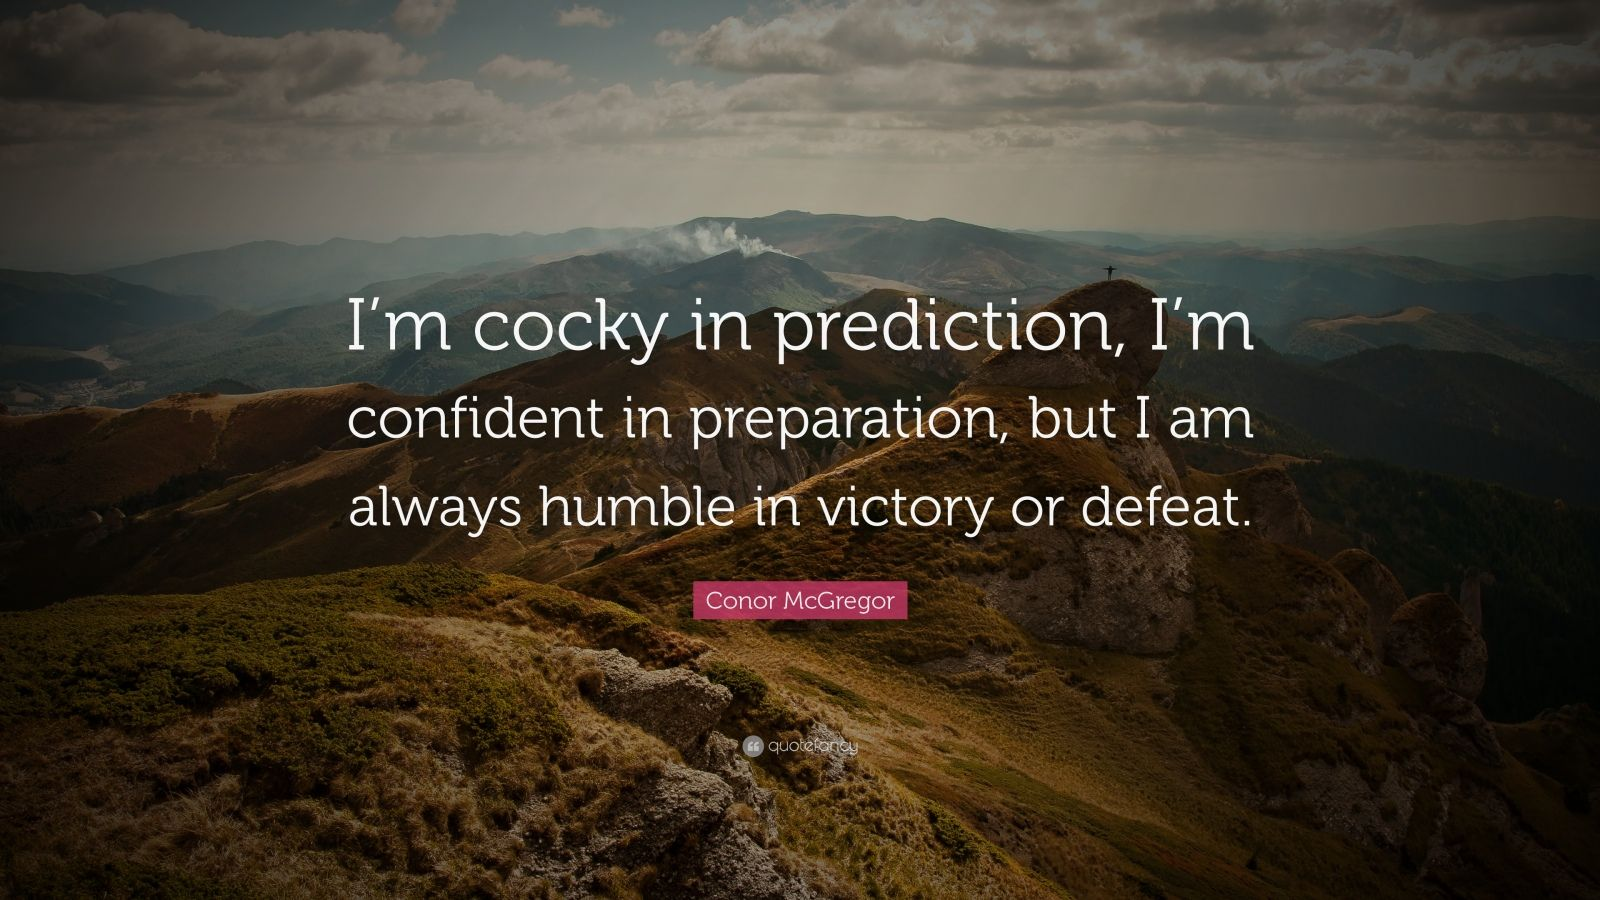 """Conor McGregor Quote: """"I'm cocky in prediction, I'm confident in preparation, but I am always humble in victory or defeat."""""""